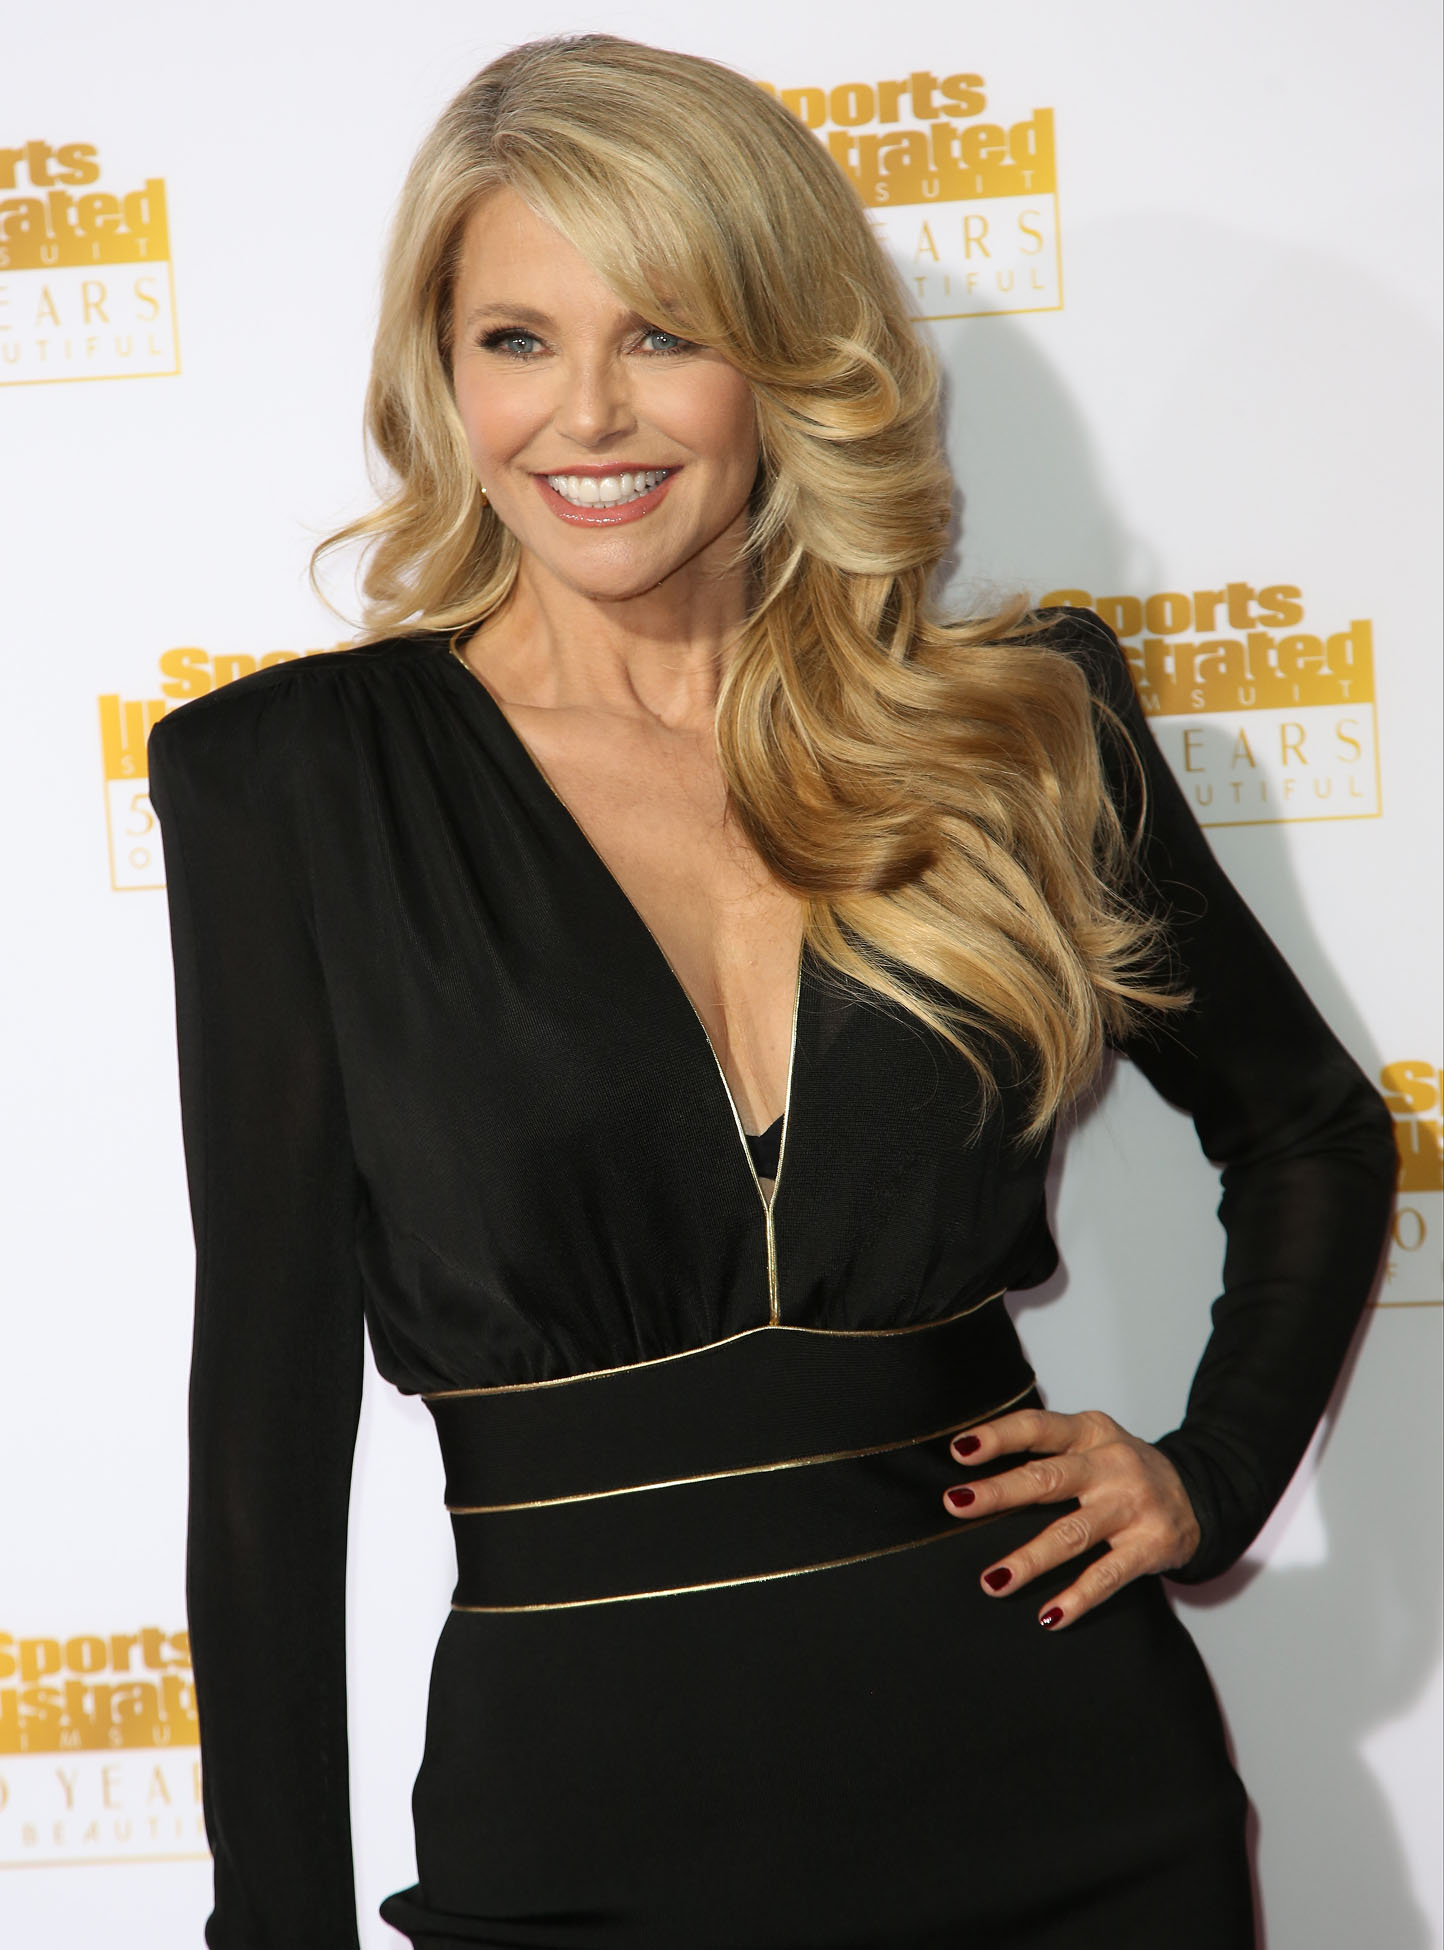 Christie Brinkley 2014 Si Swimsuit Issue Celebration 05